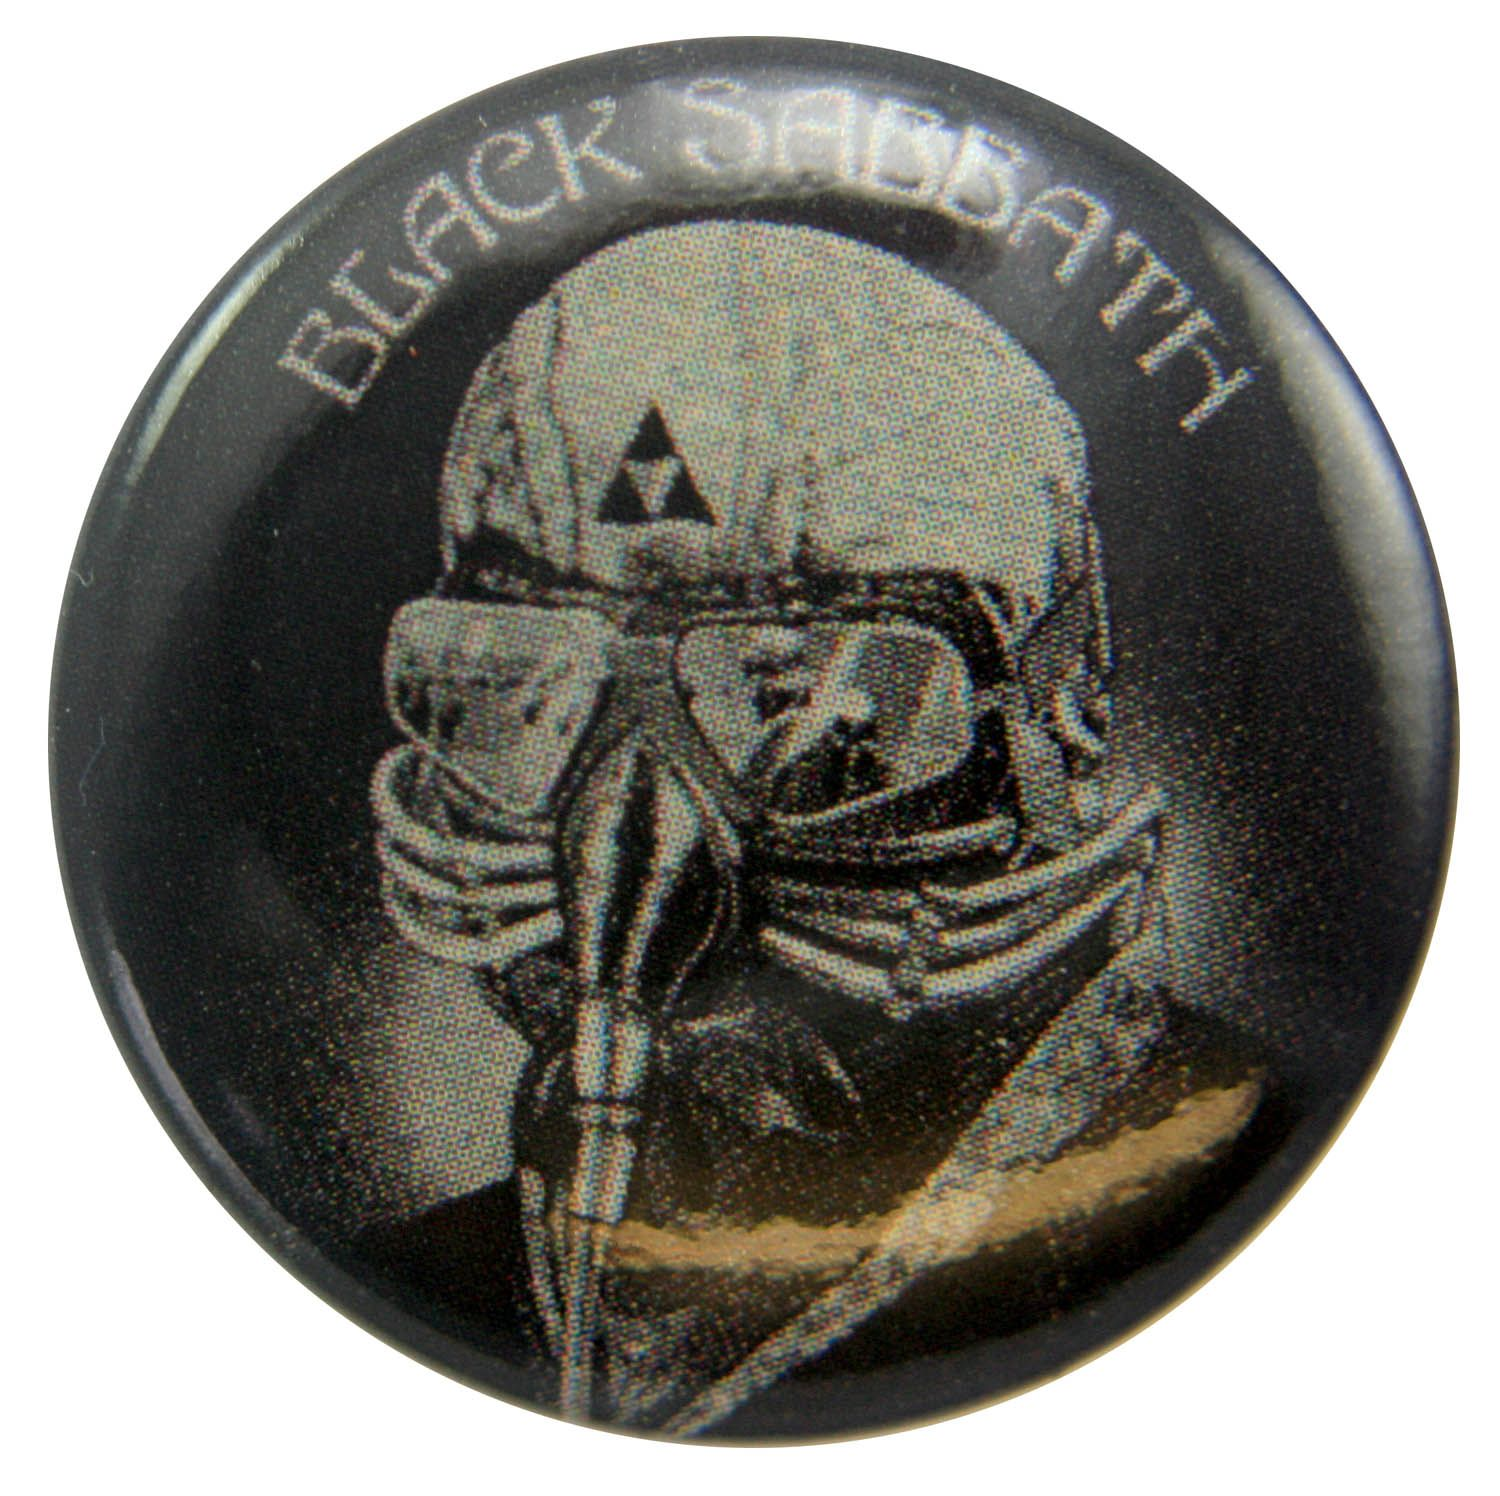 Black Sabbath - Button Badge